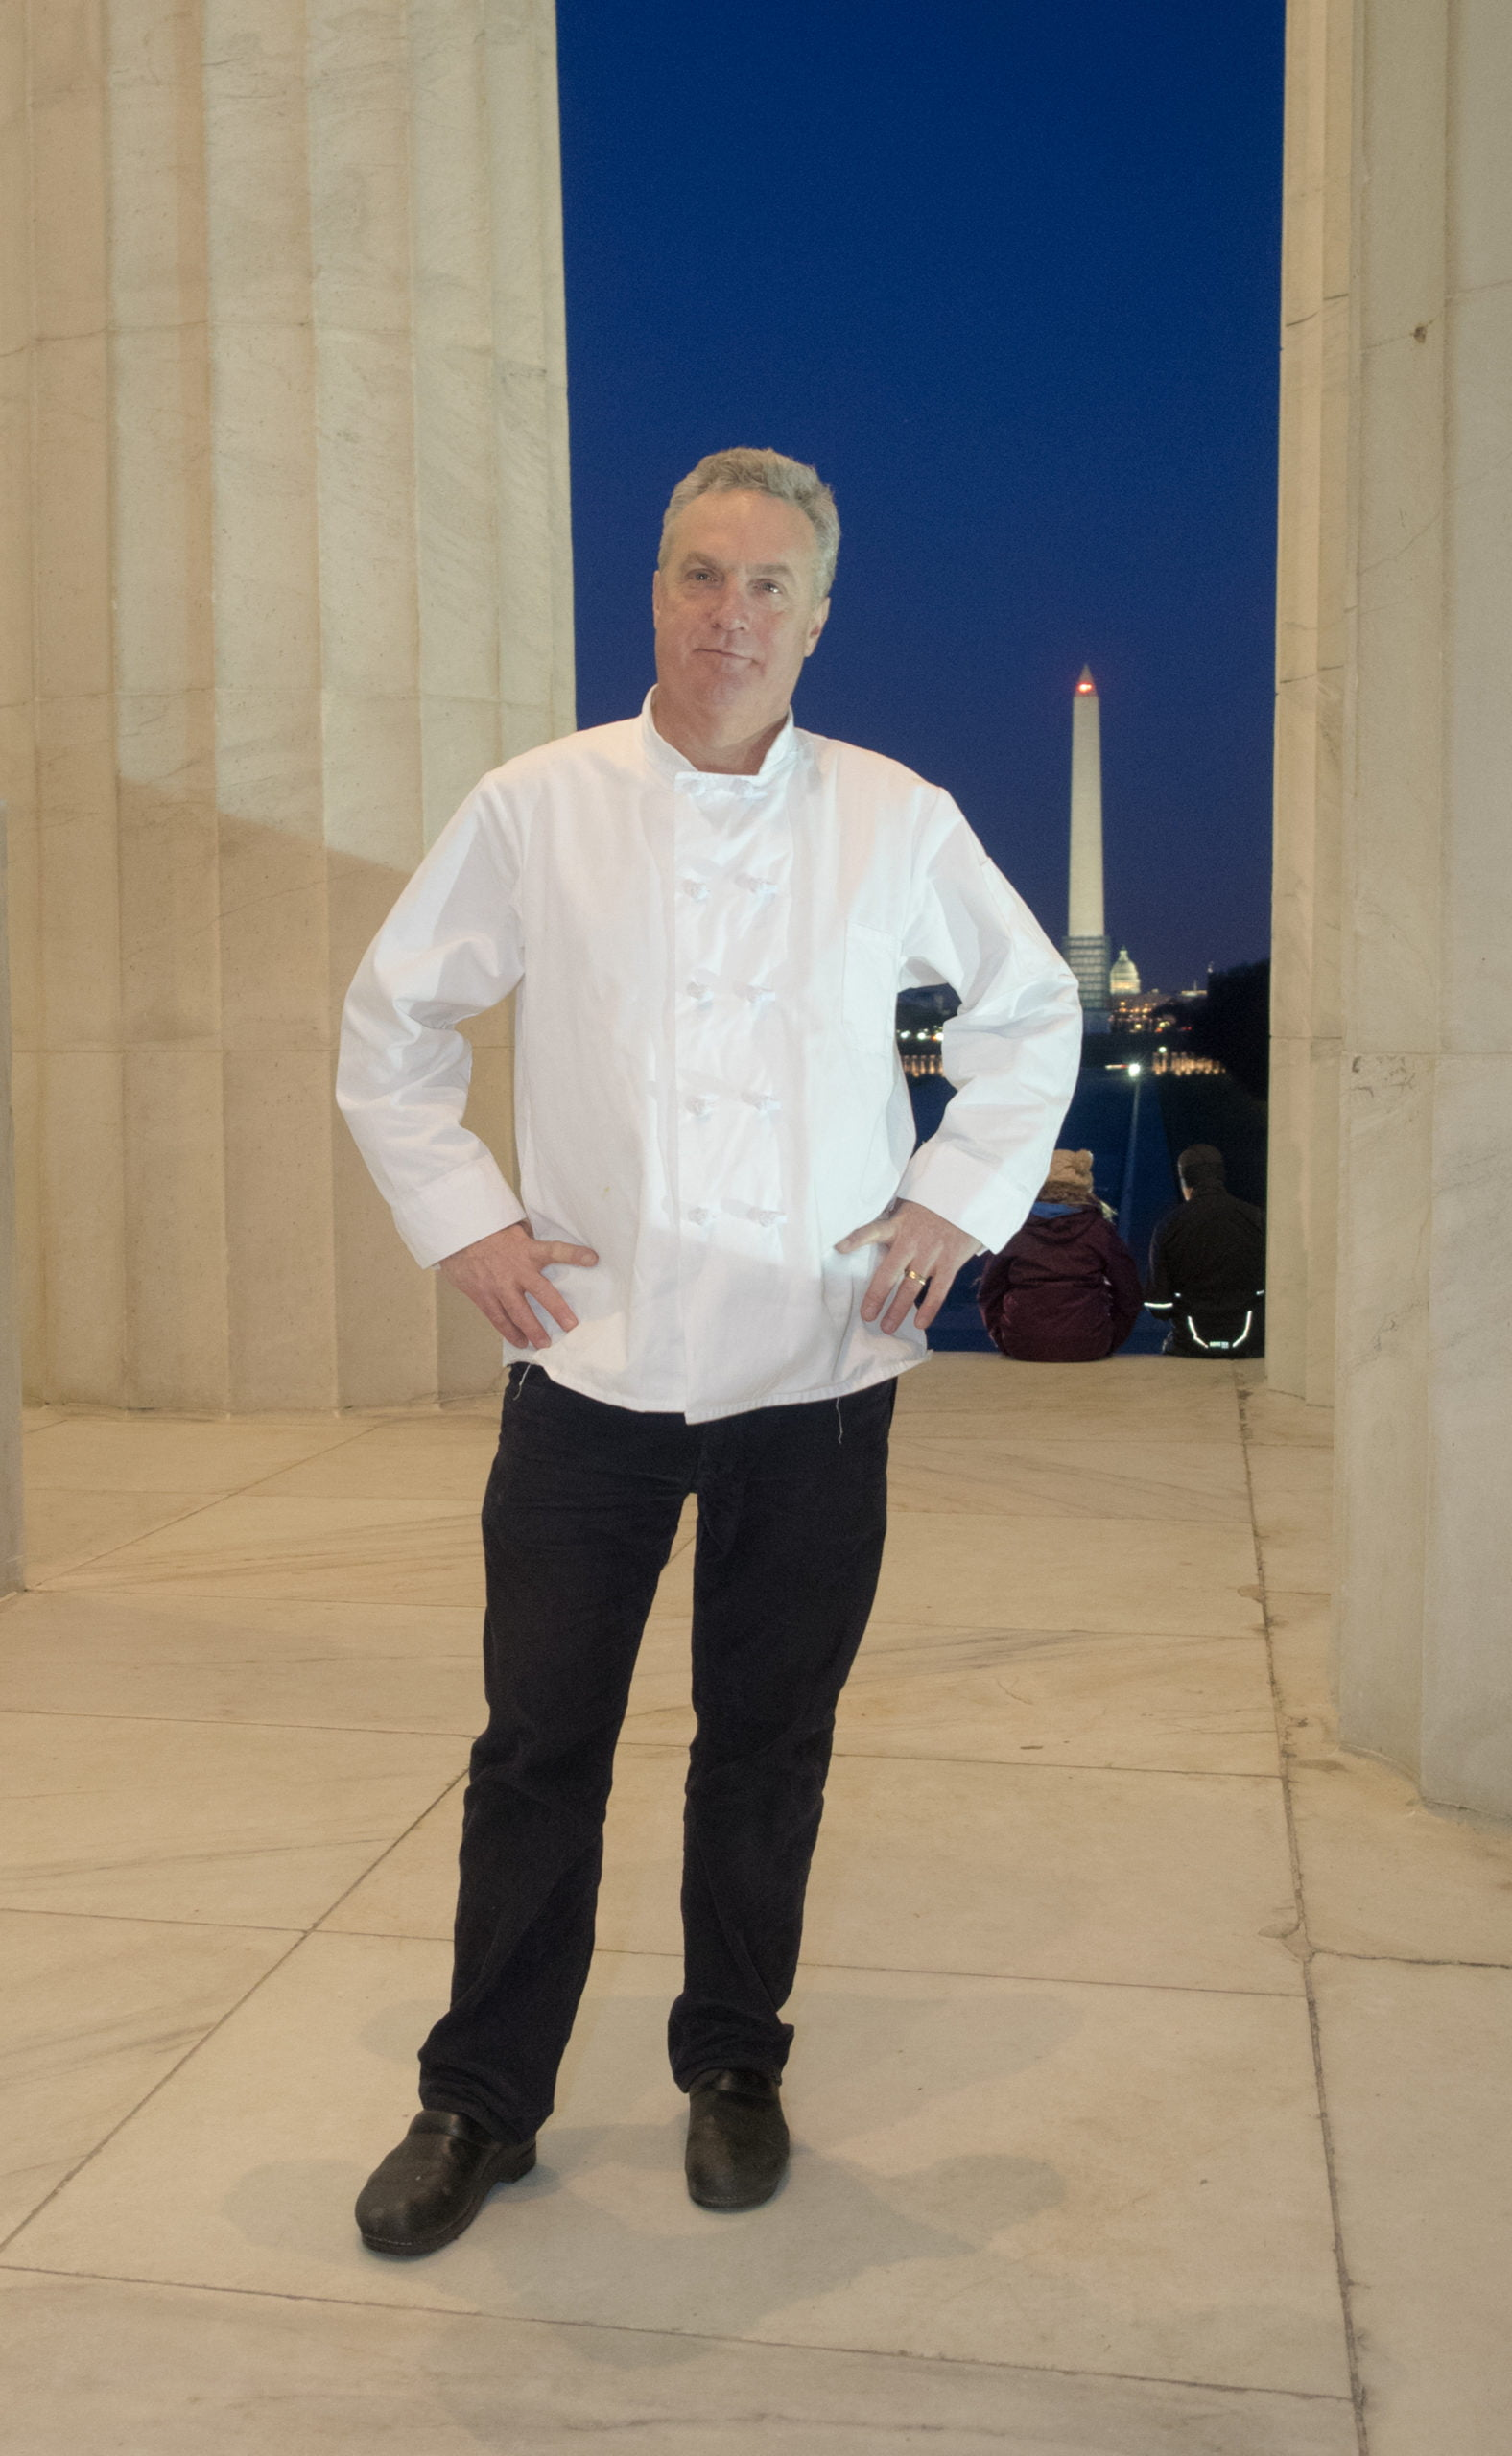 Chef Mark Haskell